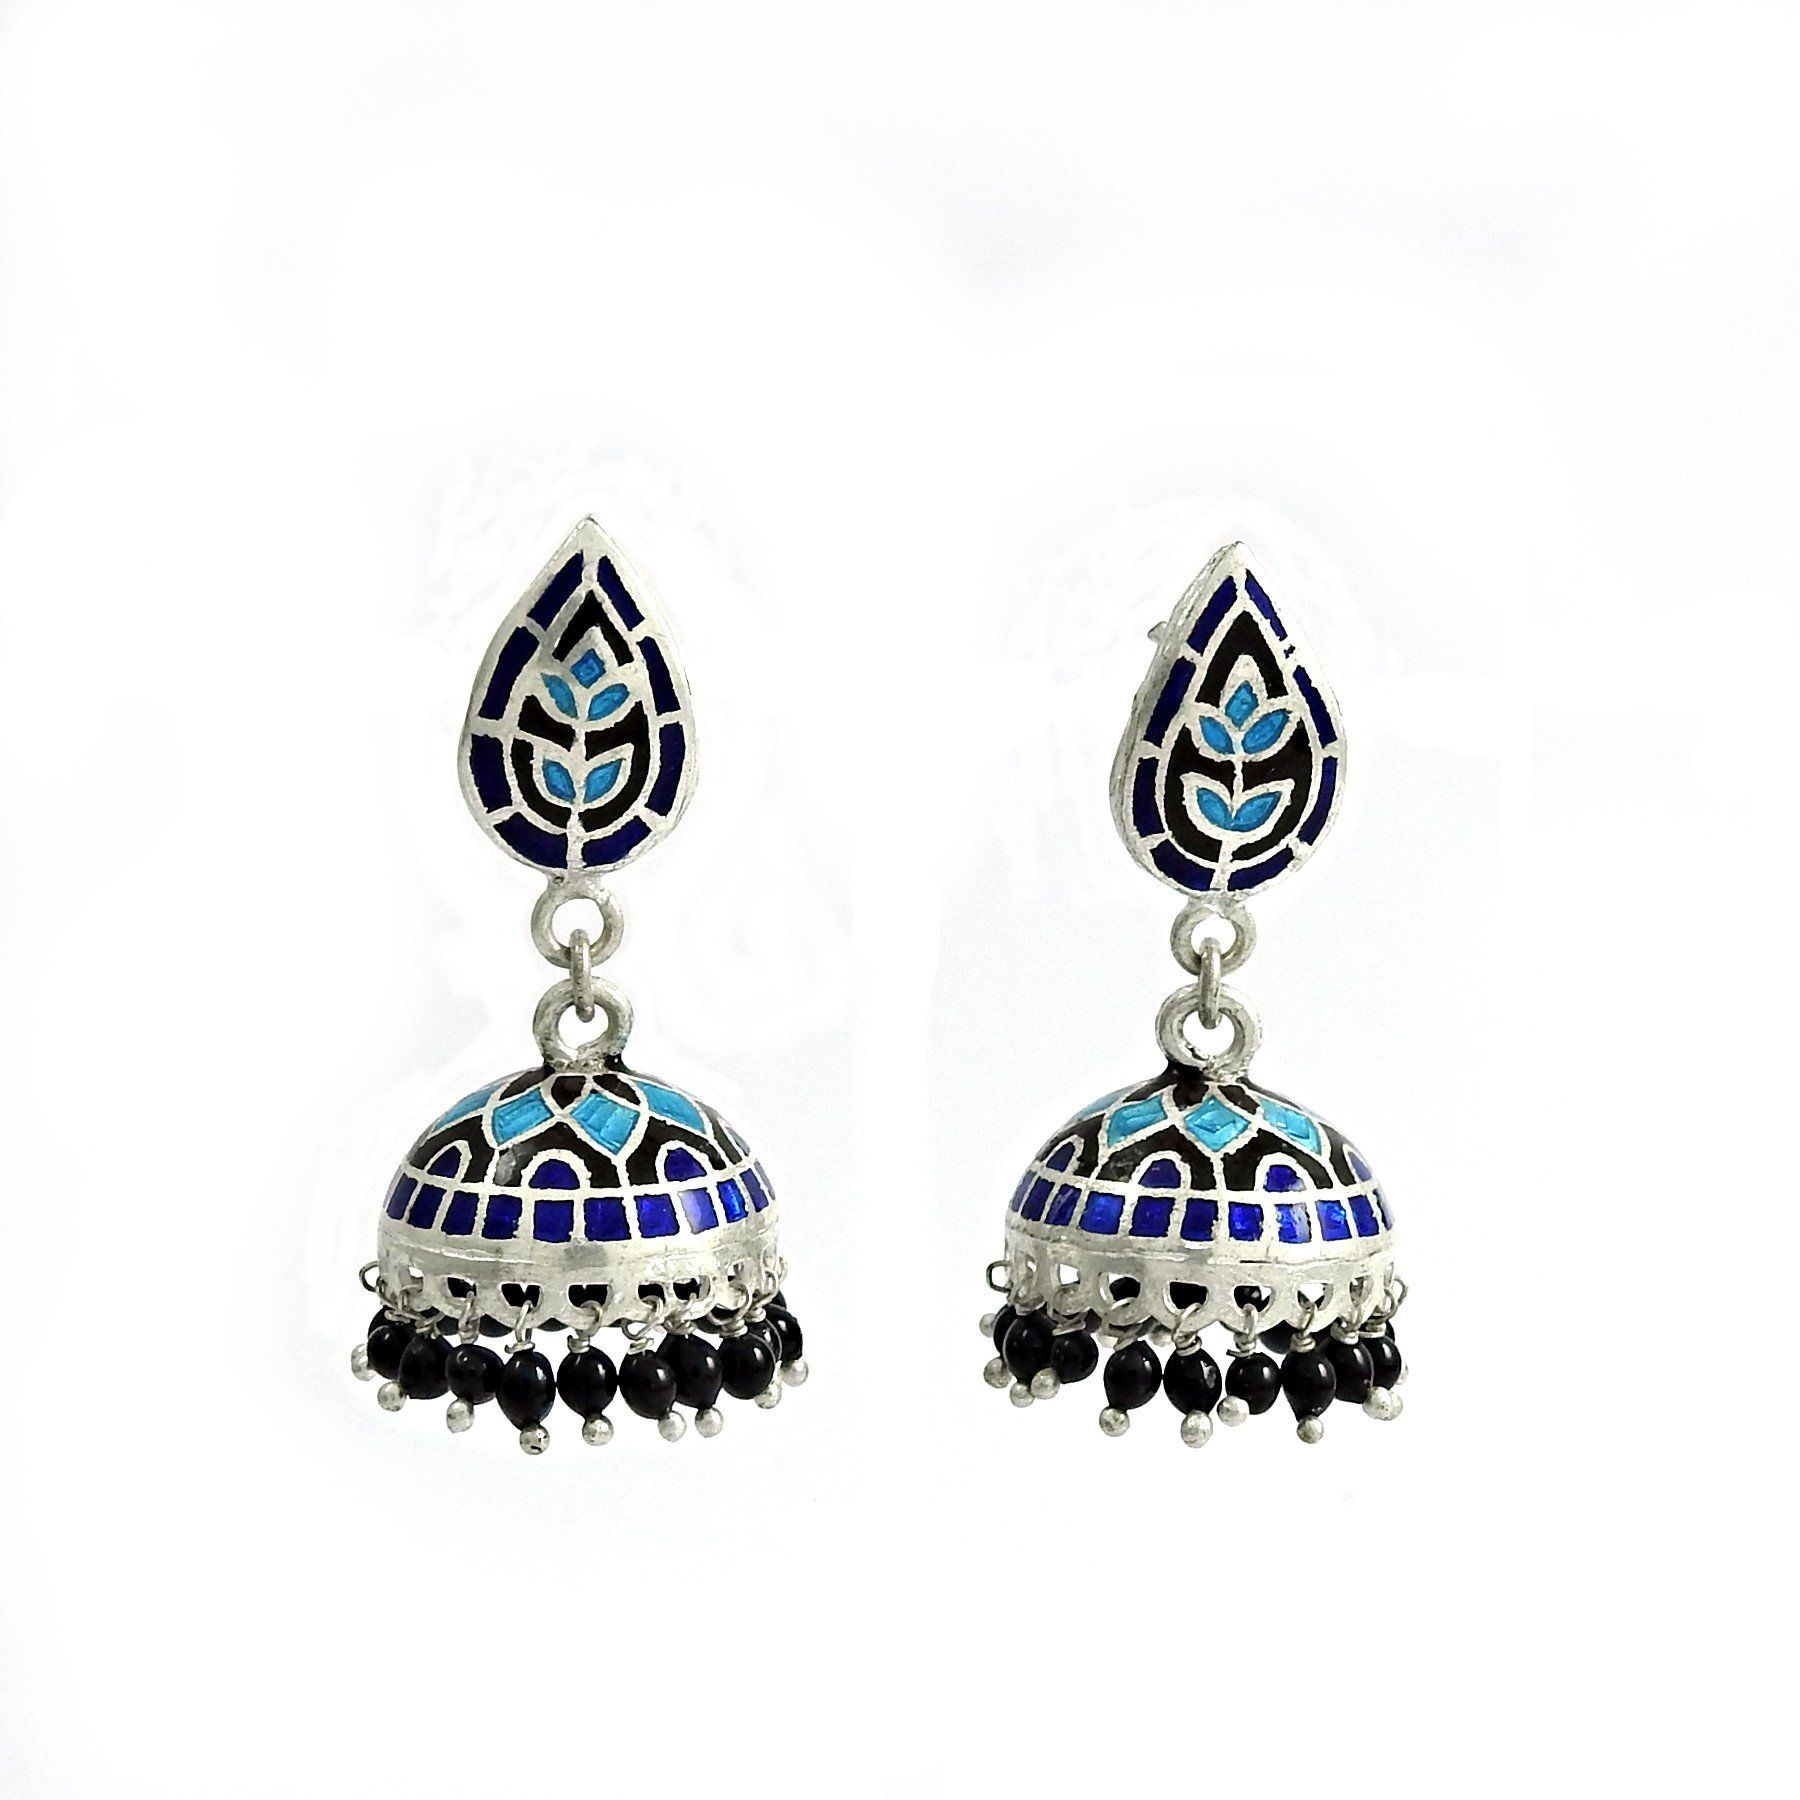 Antique Look Enamel 925 Sterling Silver Earring Jewelry